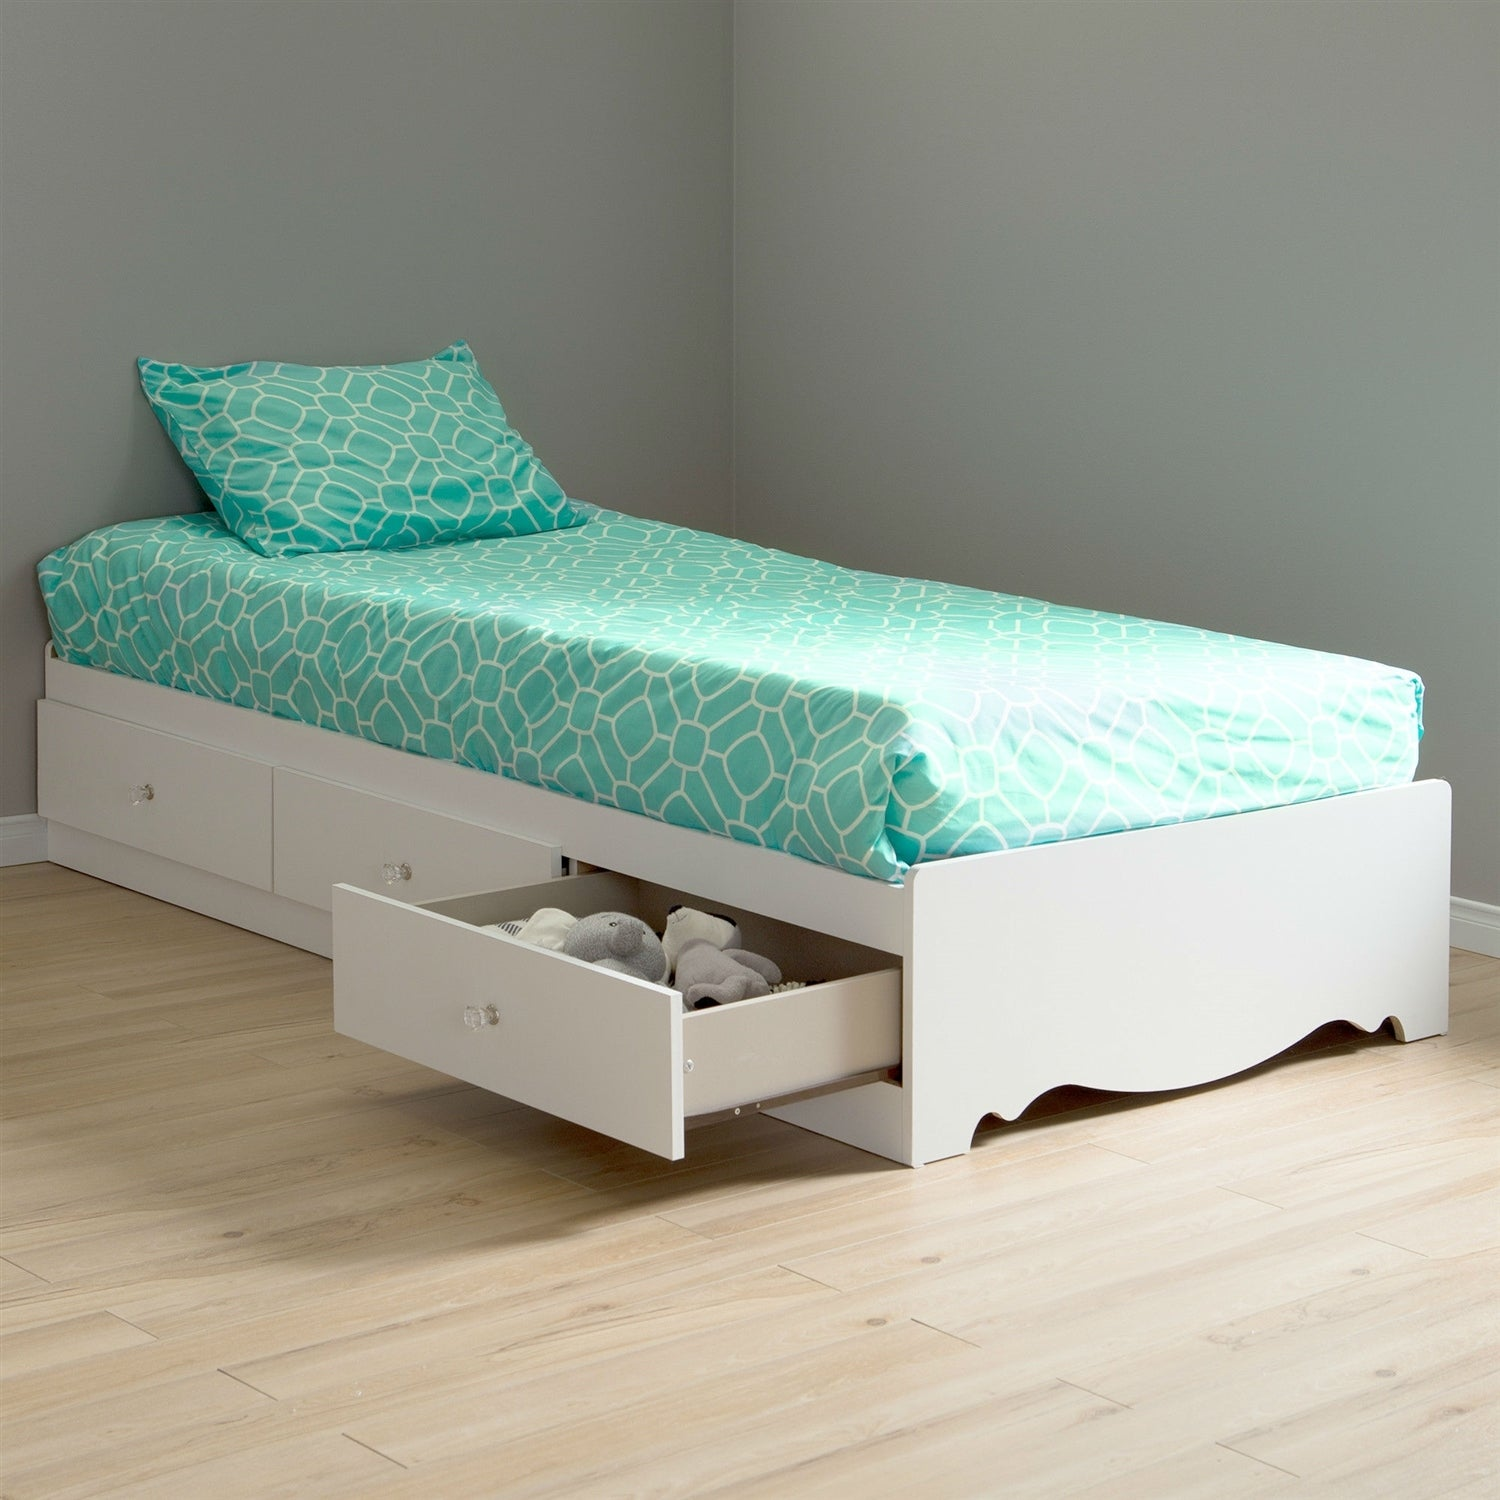 Twin Size White Wood Platform Day Bed With Storage Drawers Pictured Overstock 29083975